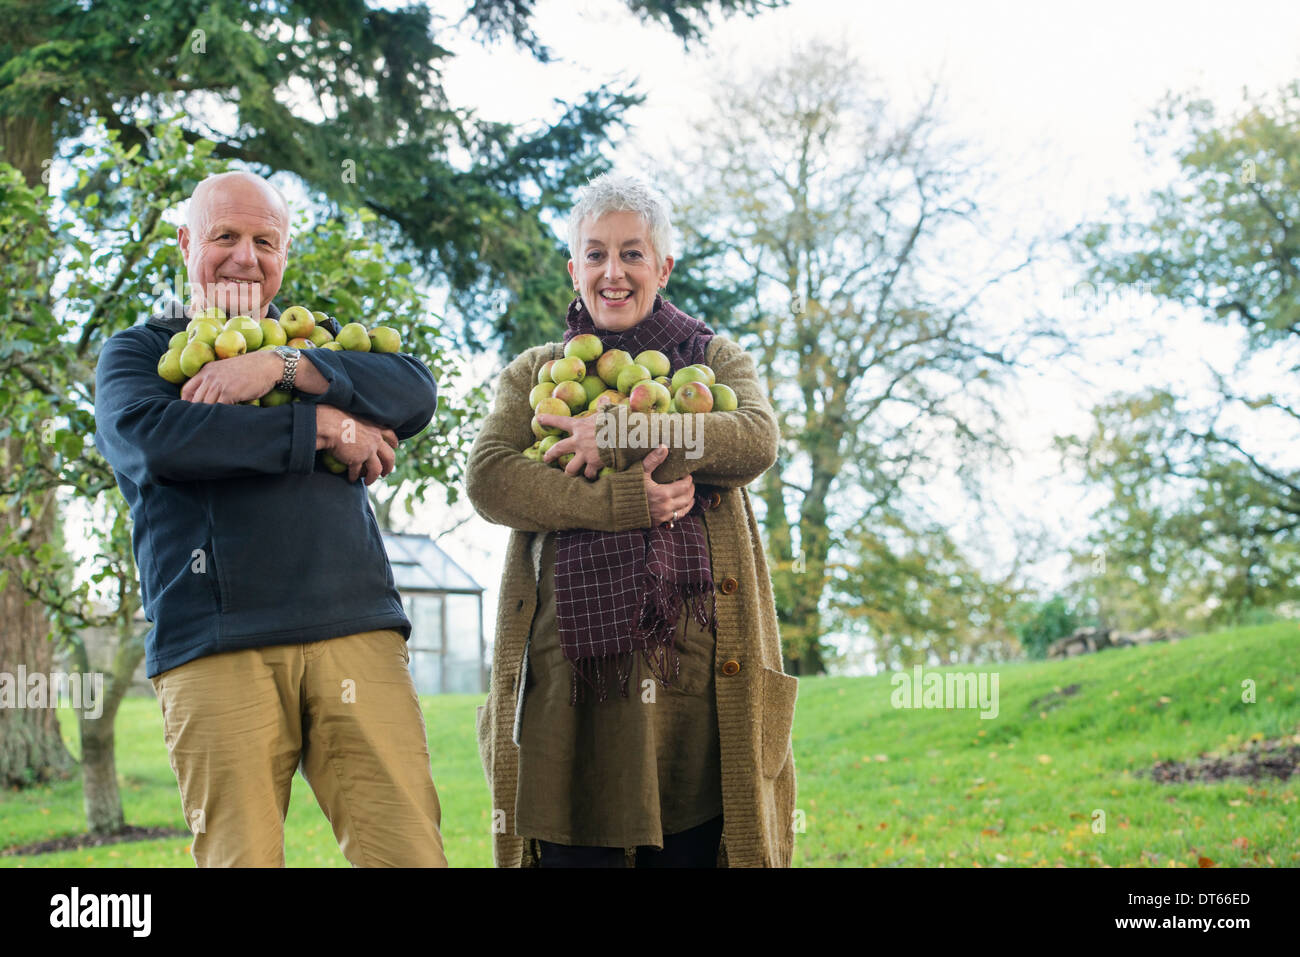 Happy senior couple with armful of apples - Stock Image